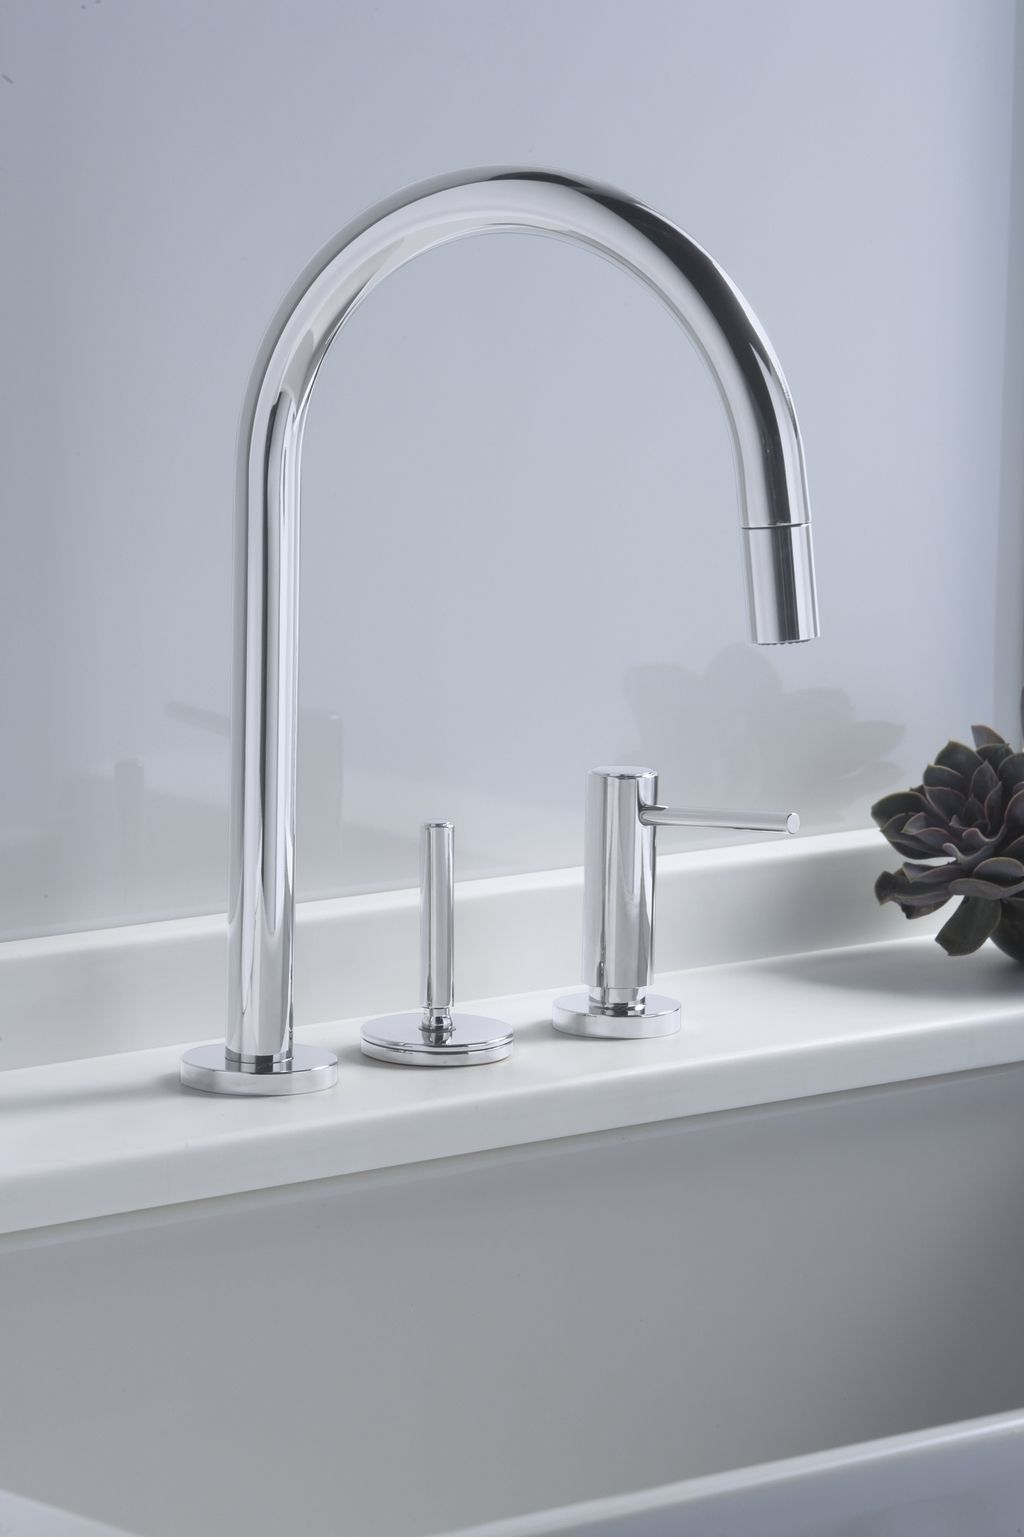 kallista kitchen faucets kallista one pull kitchen faucet faucets 12812